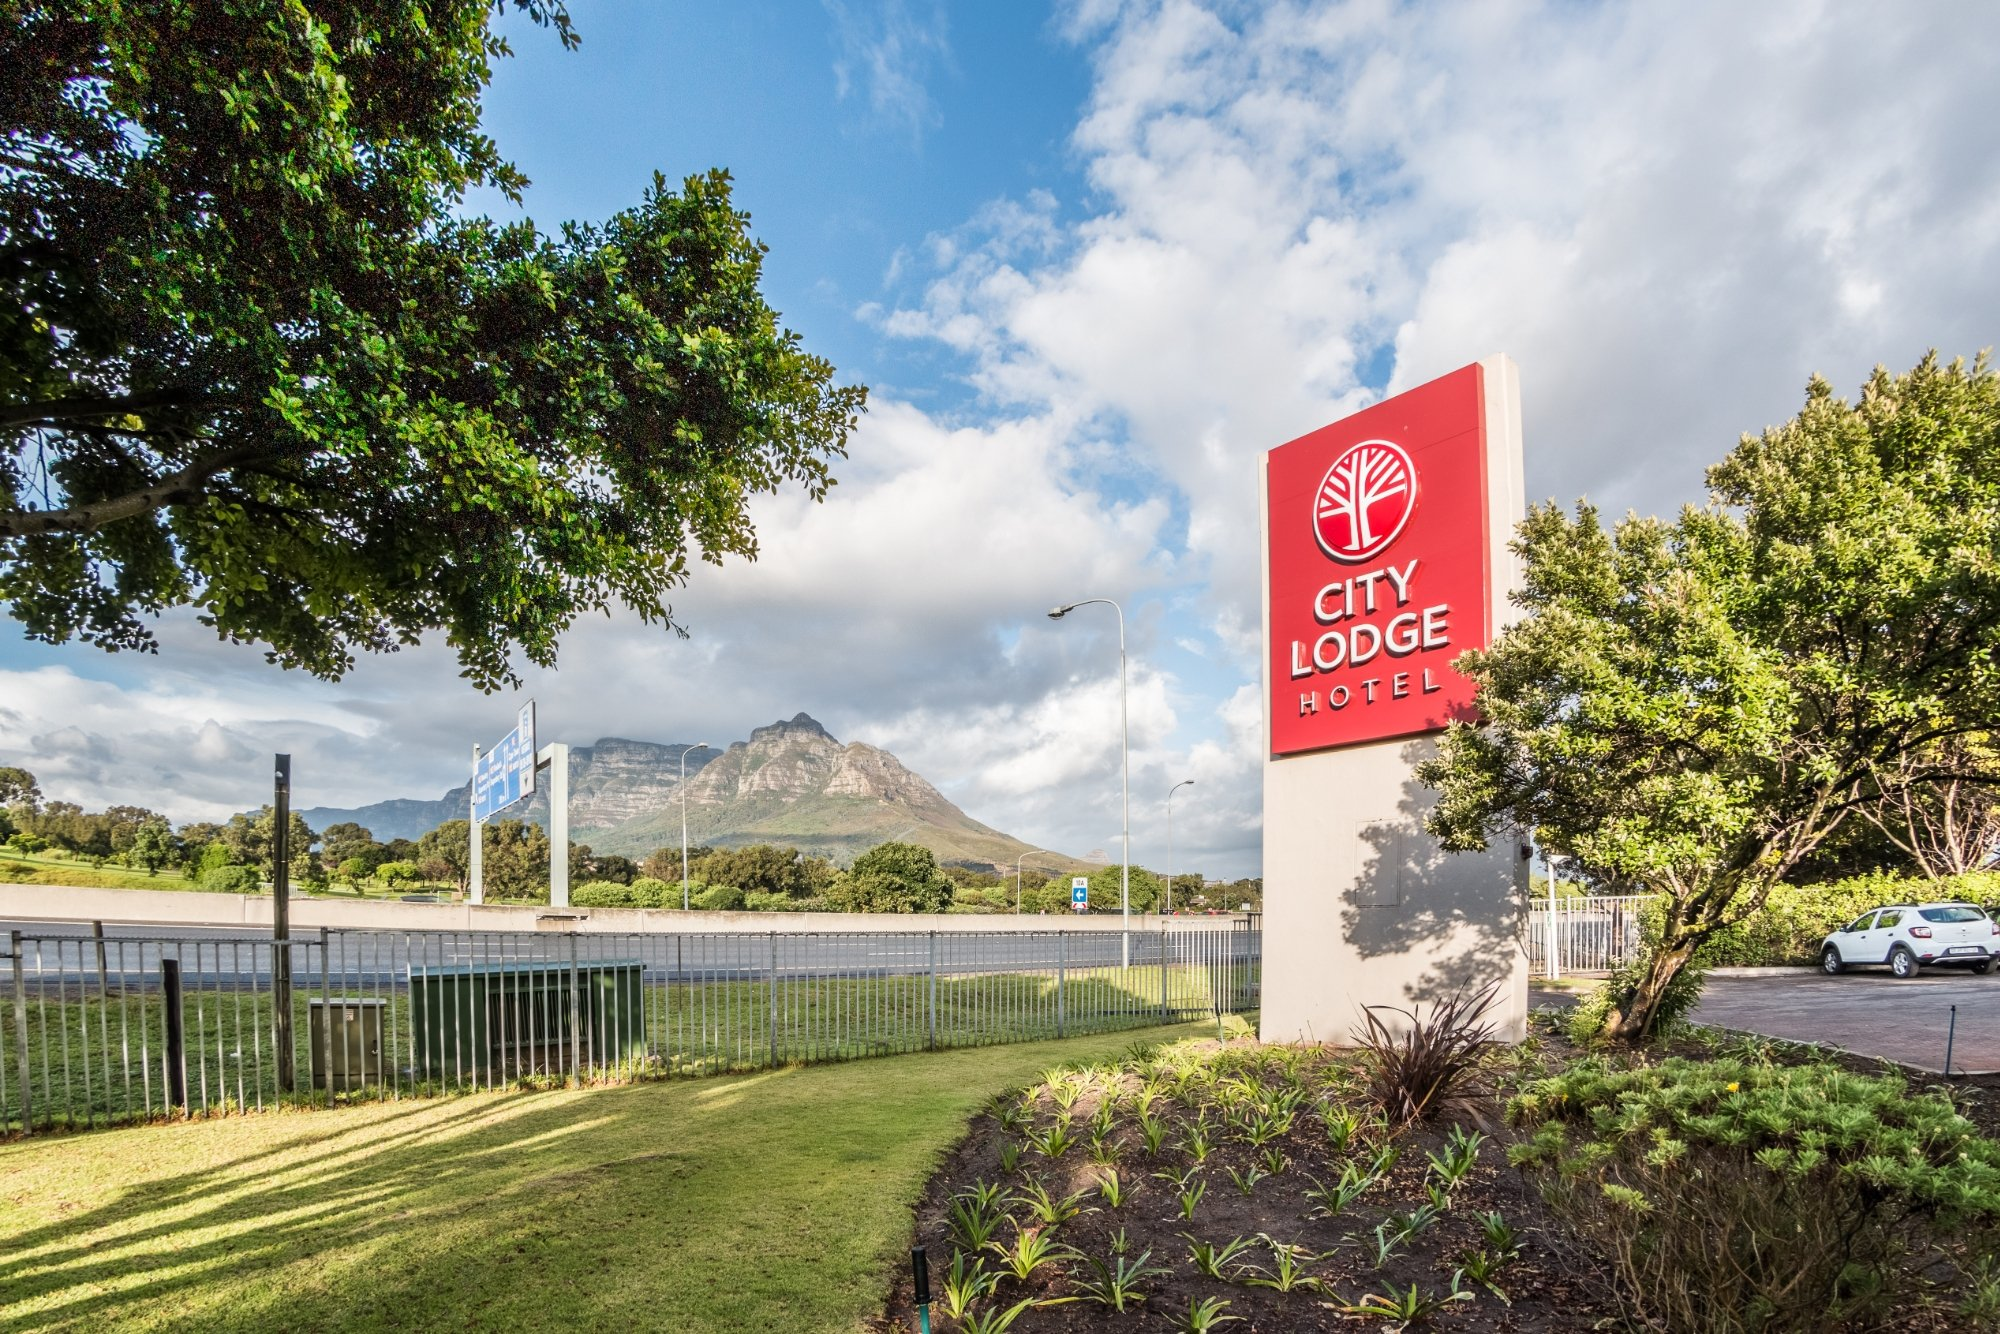 City Lodge Hotel Pinelands